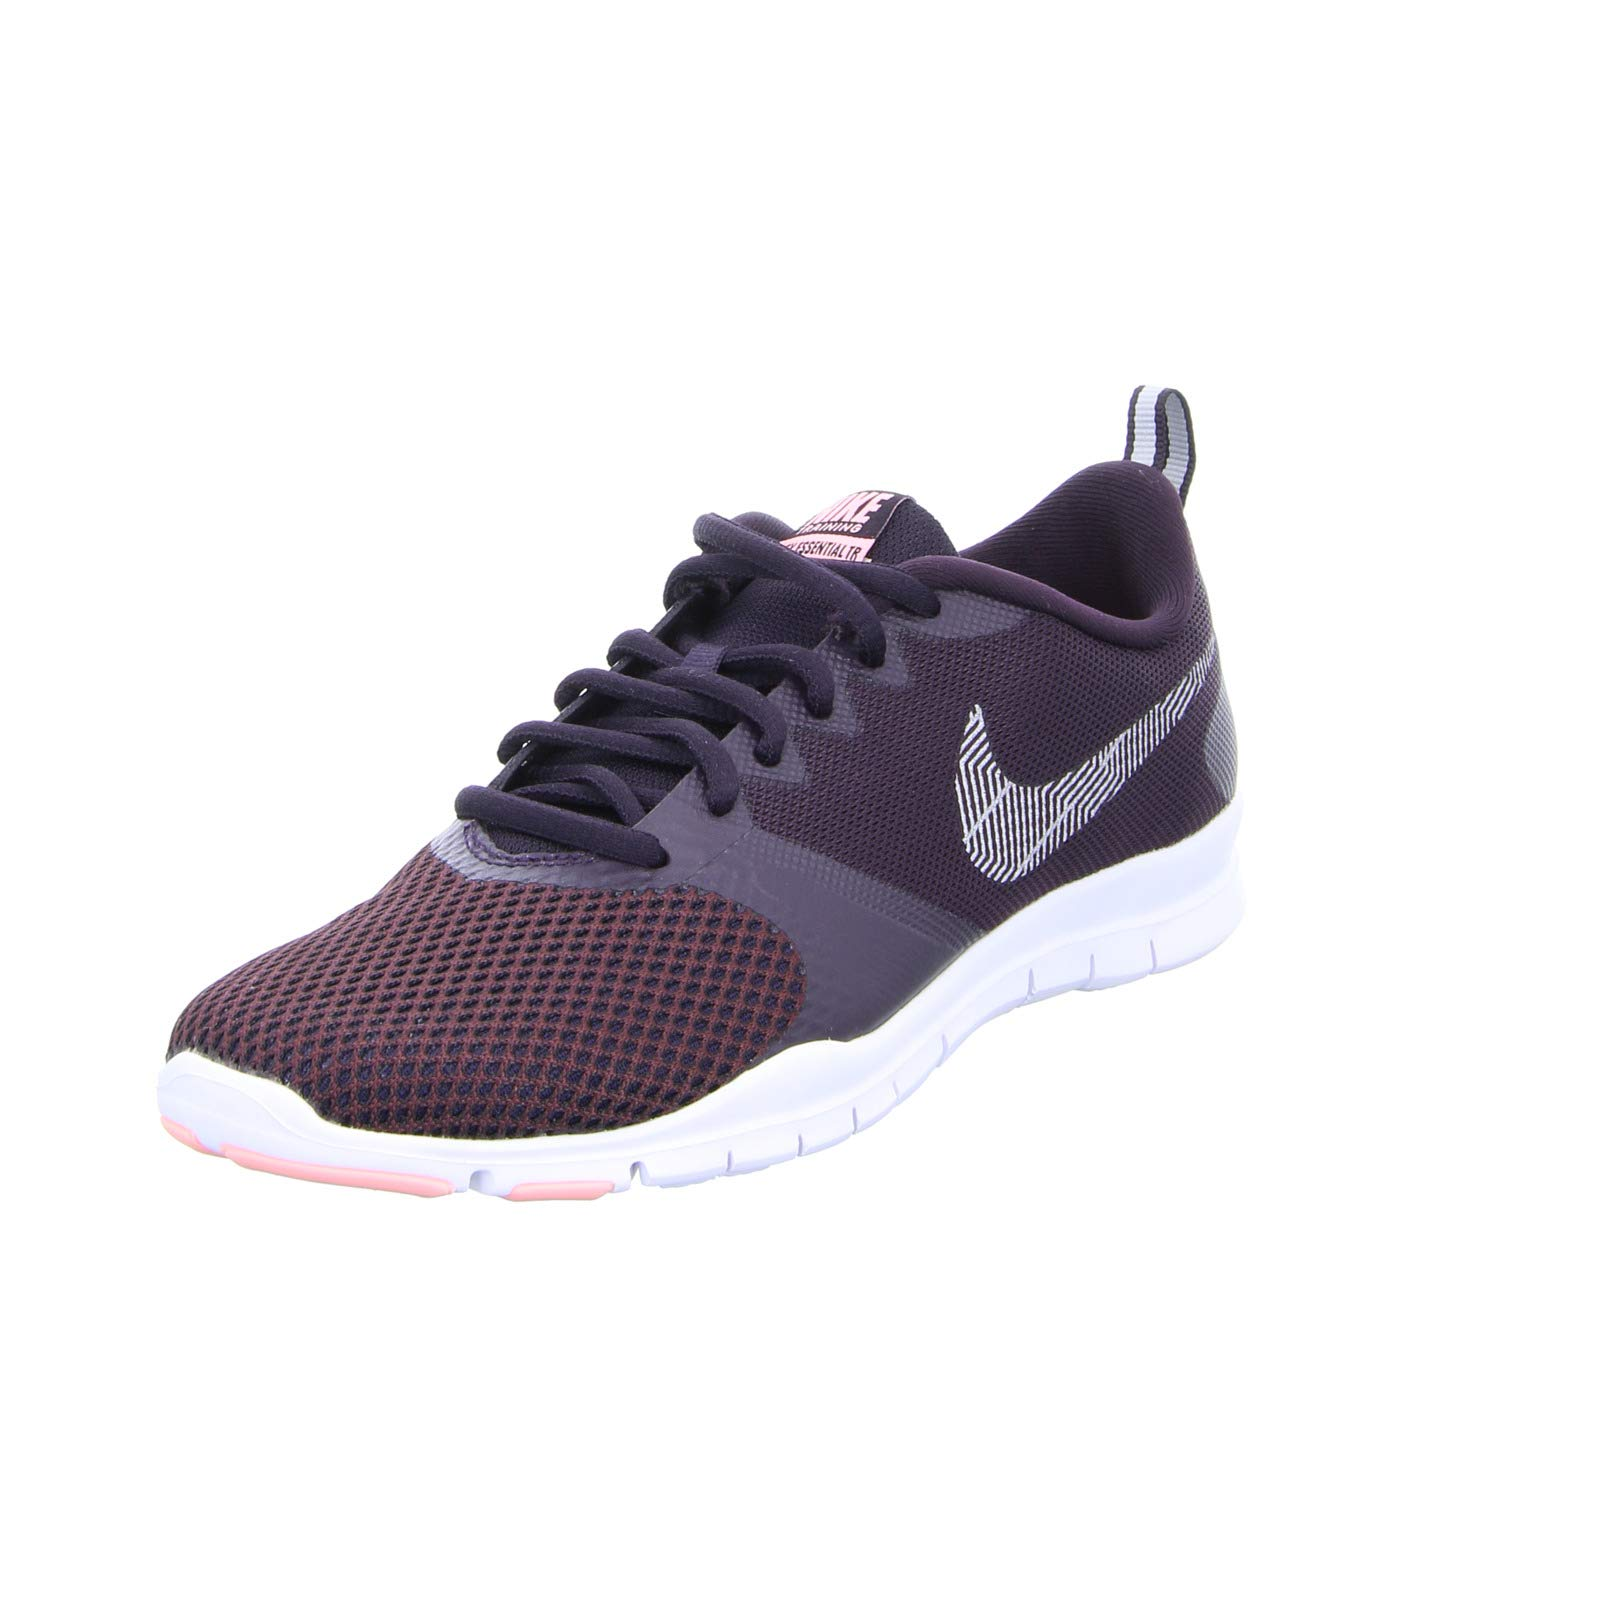 Nike Women's WMNS Flex Essential TR, Burgundy ASH/Burgundy Crush, 6.5 US